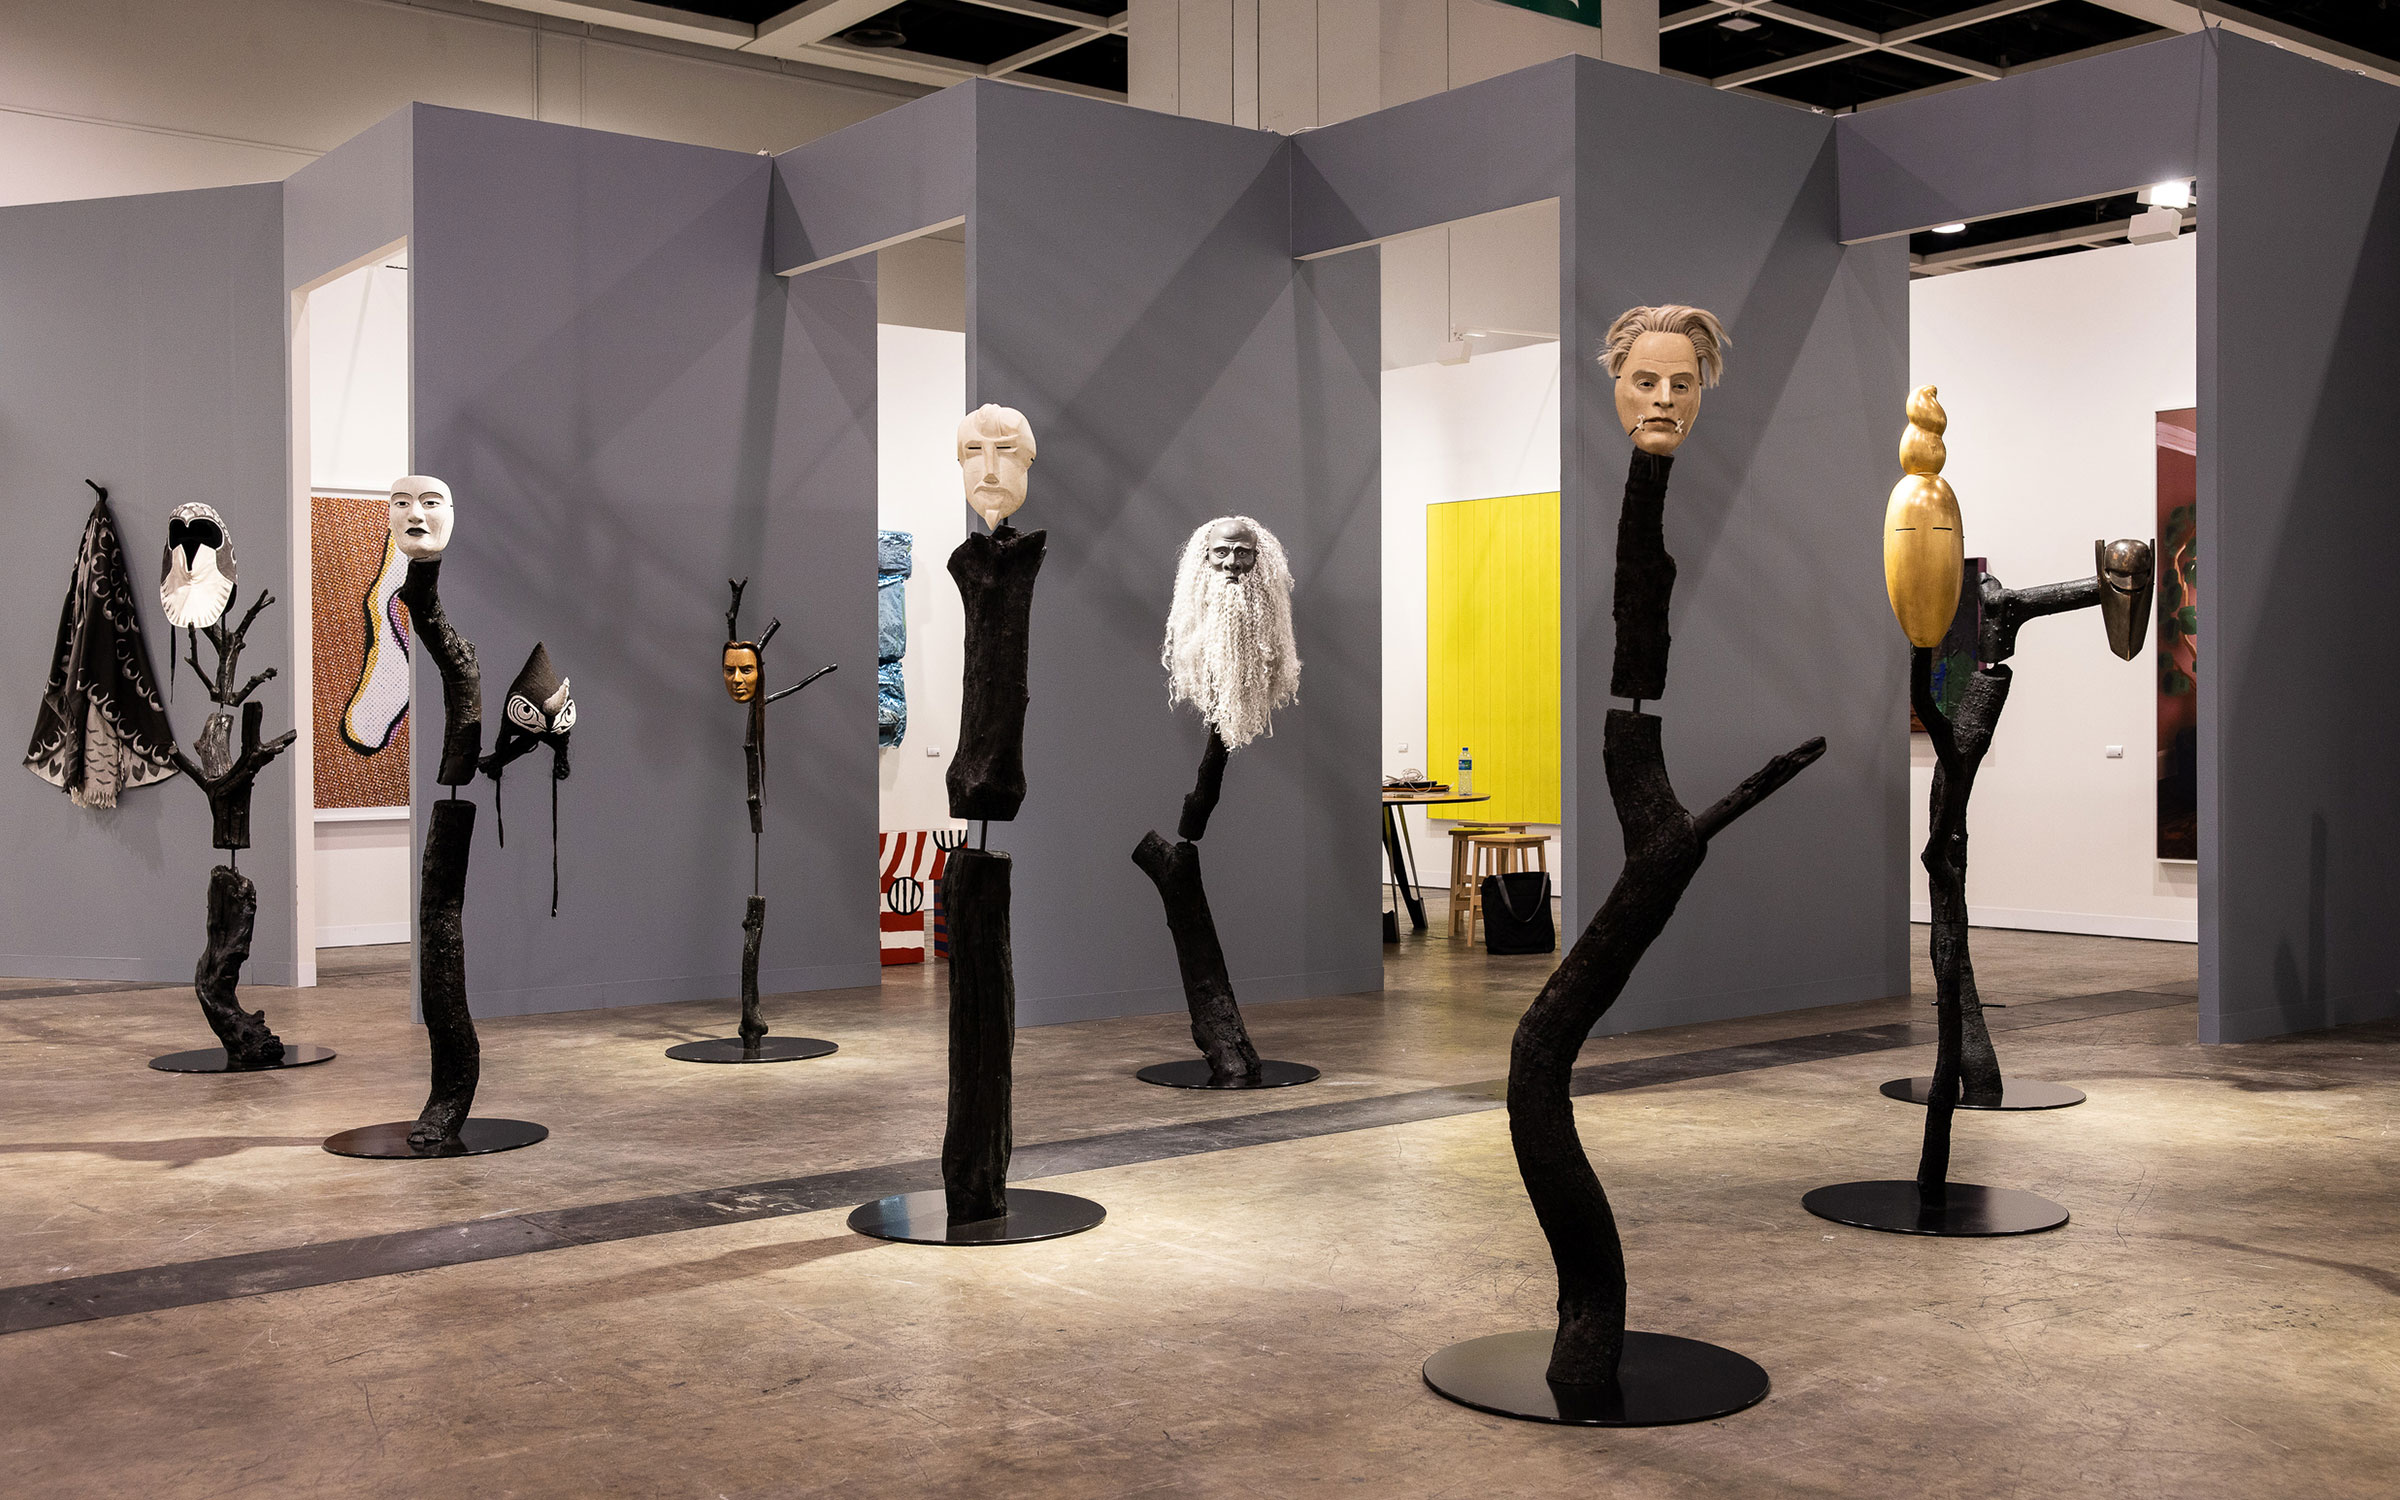 D Art Exhibition Hong Kong : Art basel s show in hong kong hong kong